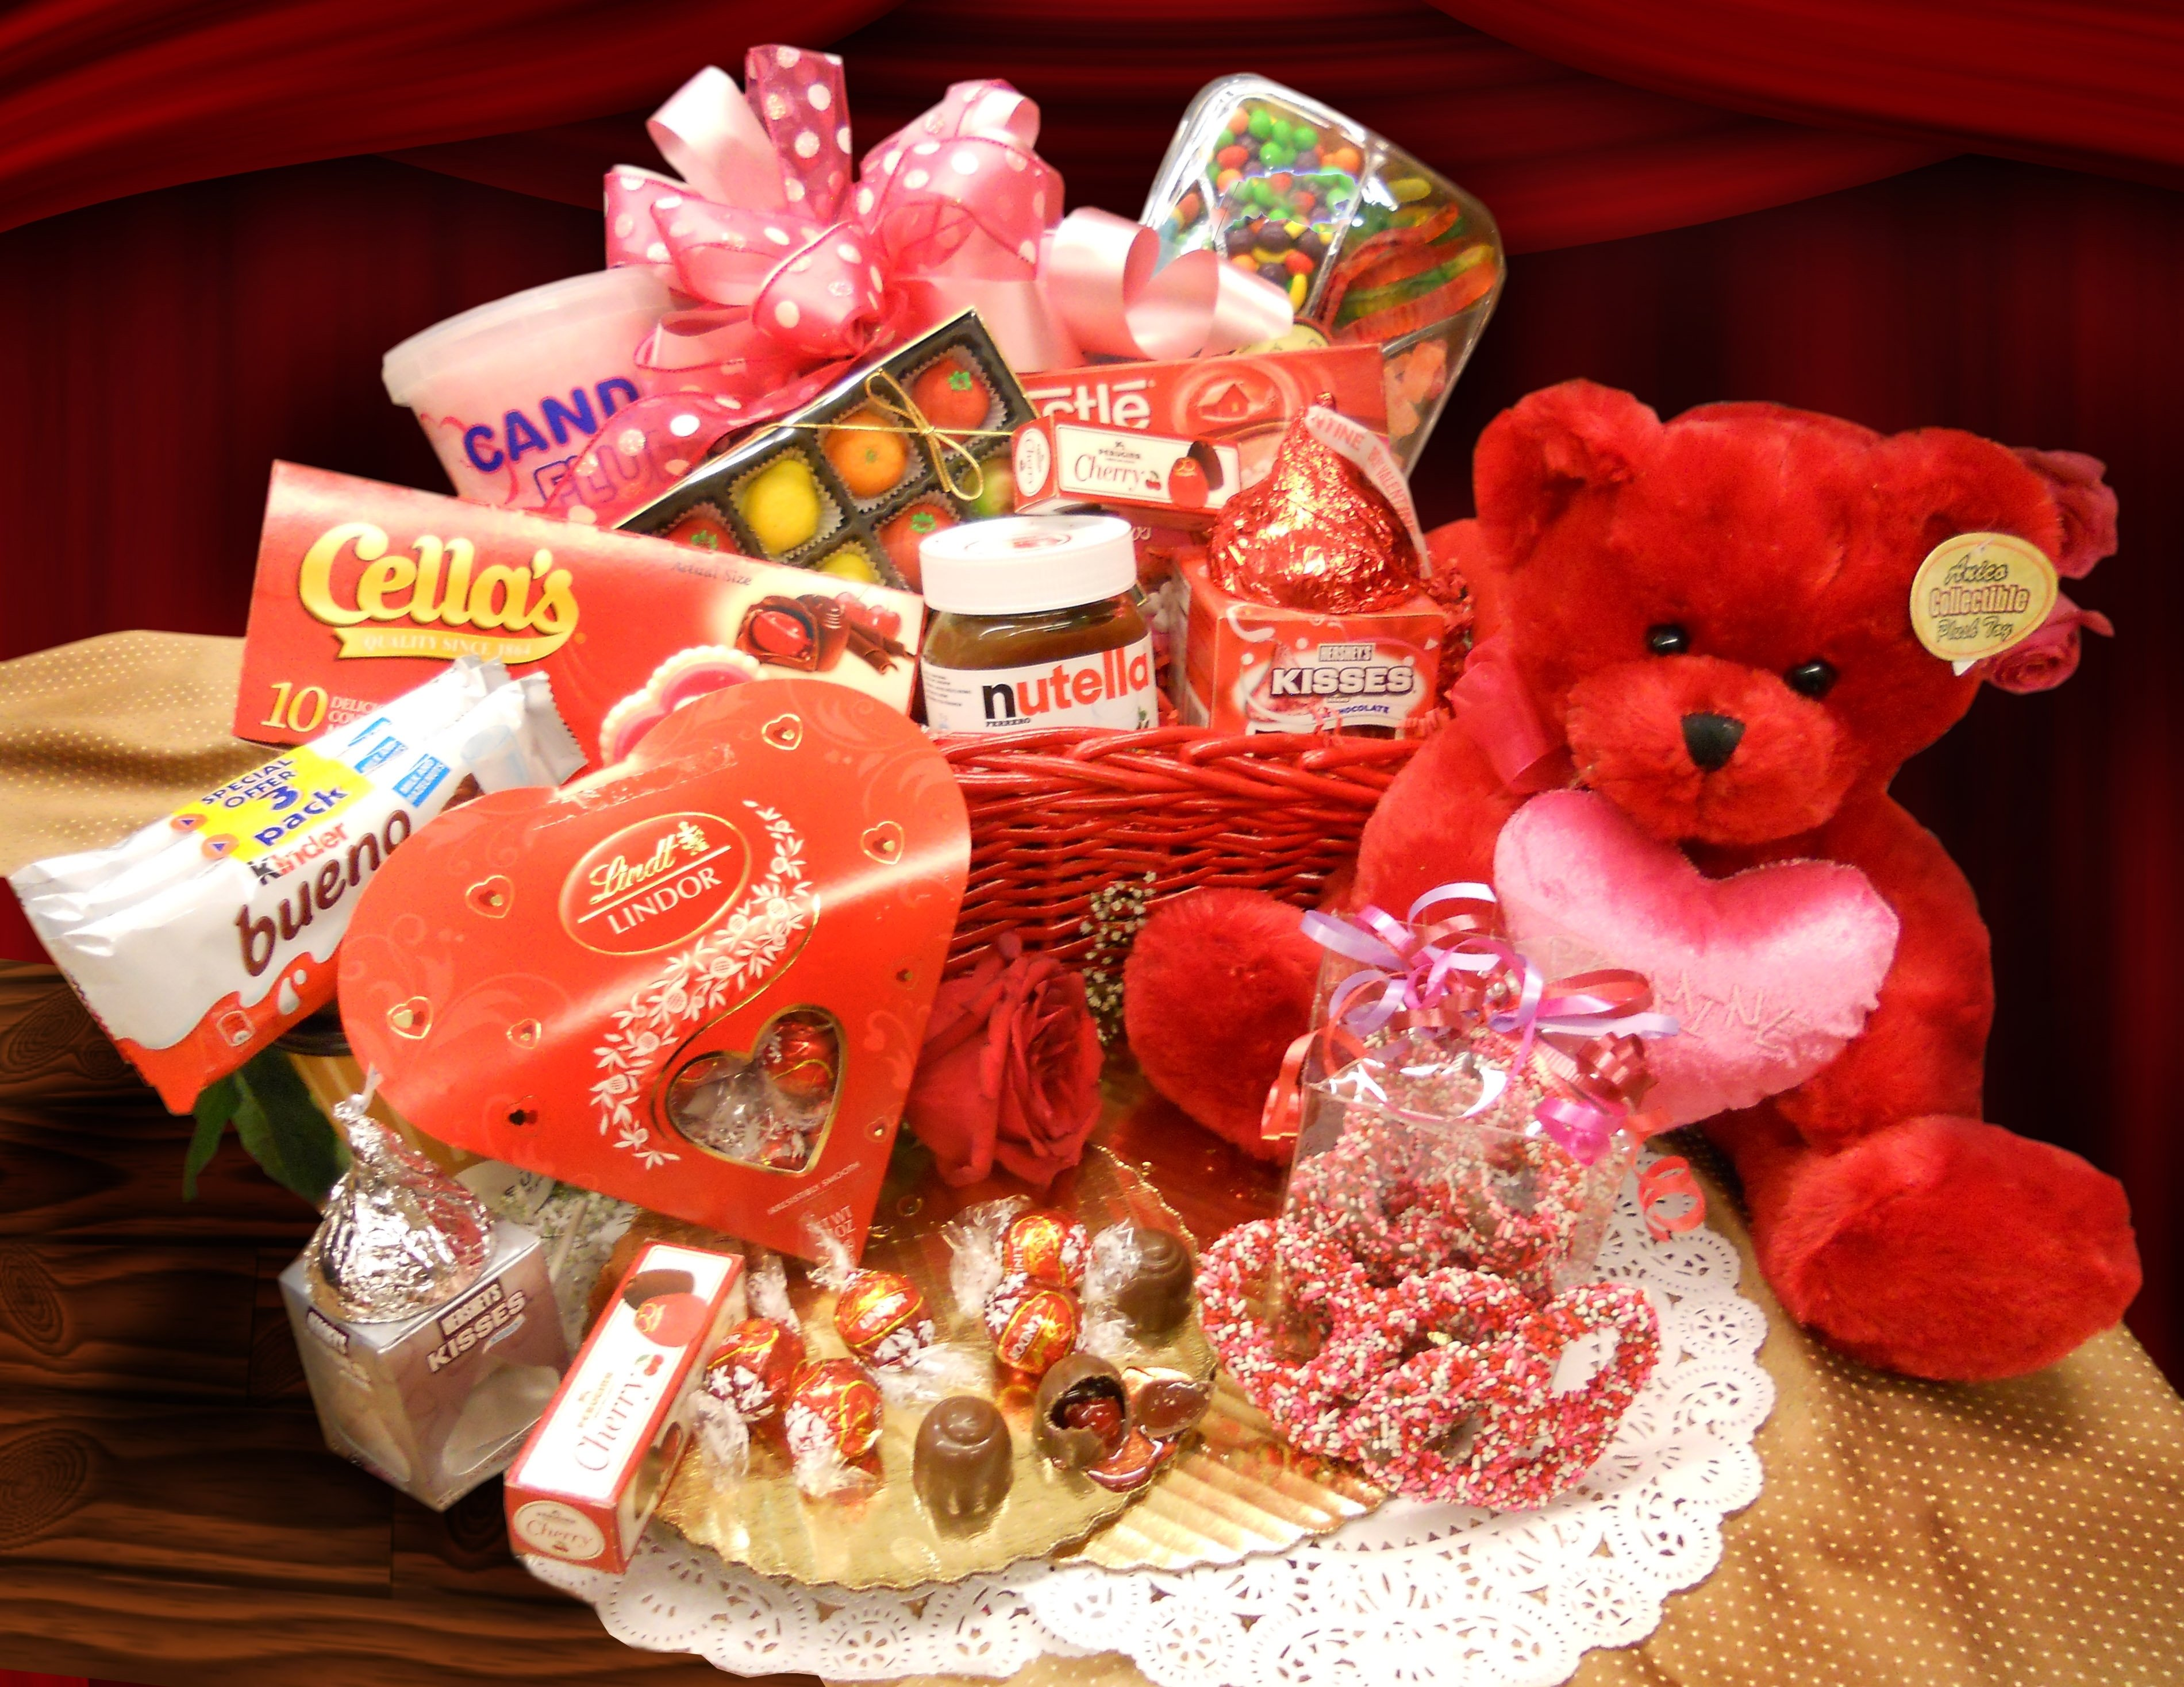 10 Ideal Valentines Day Ideas For Her best valentines day gifts startupcorner co 2020